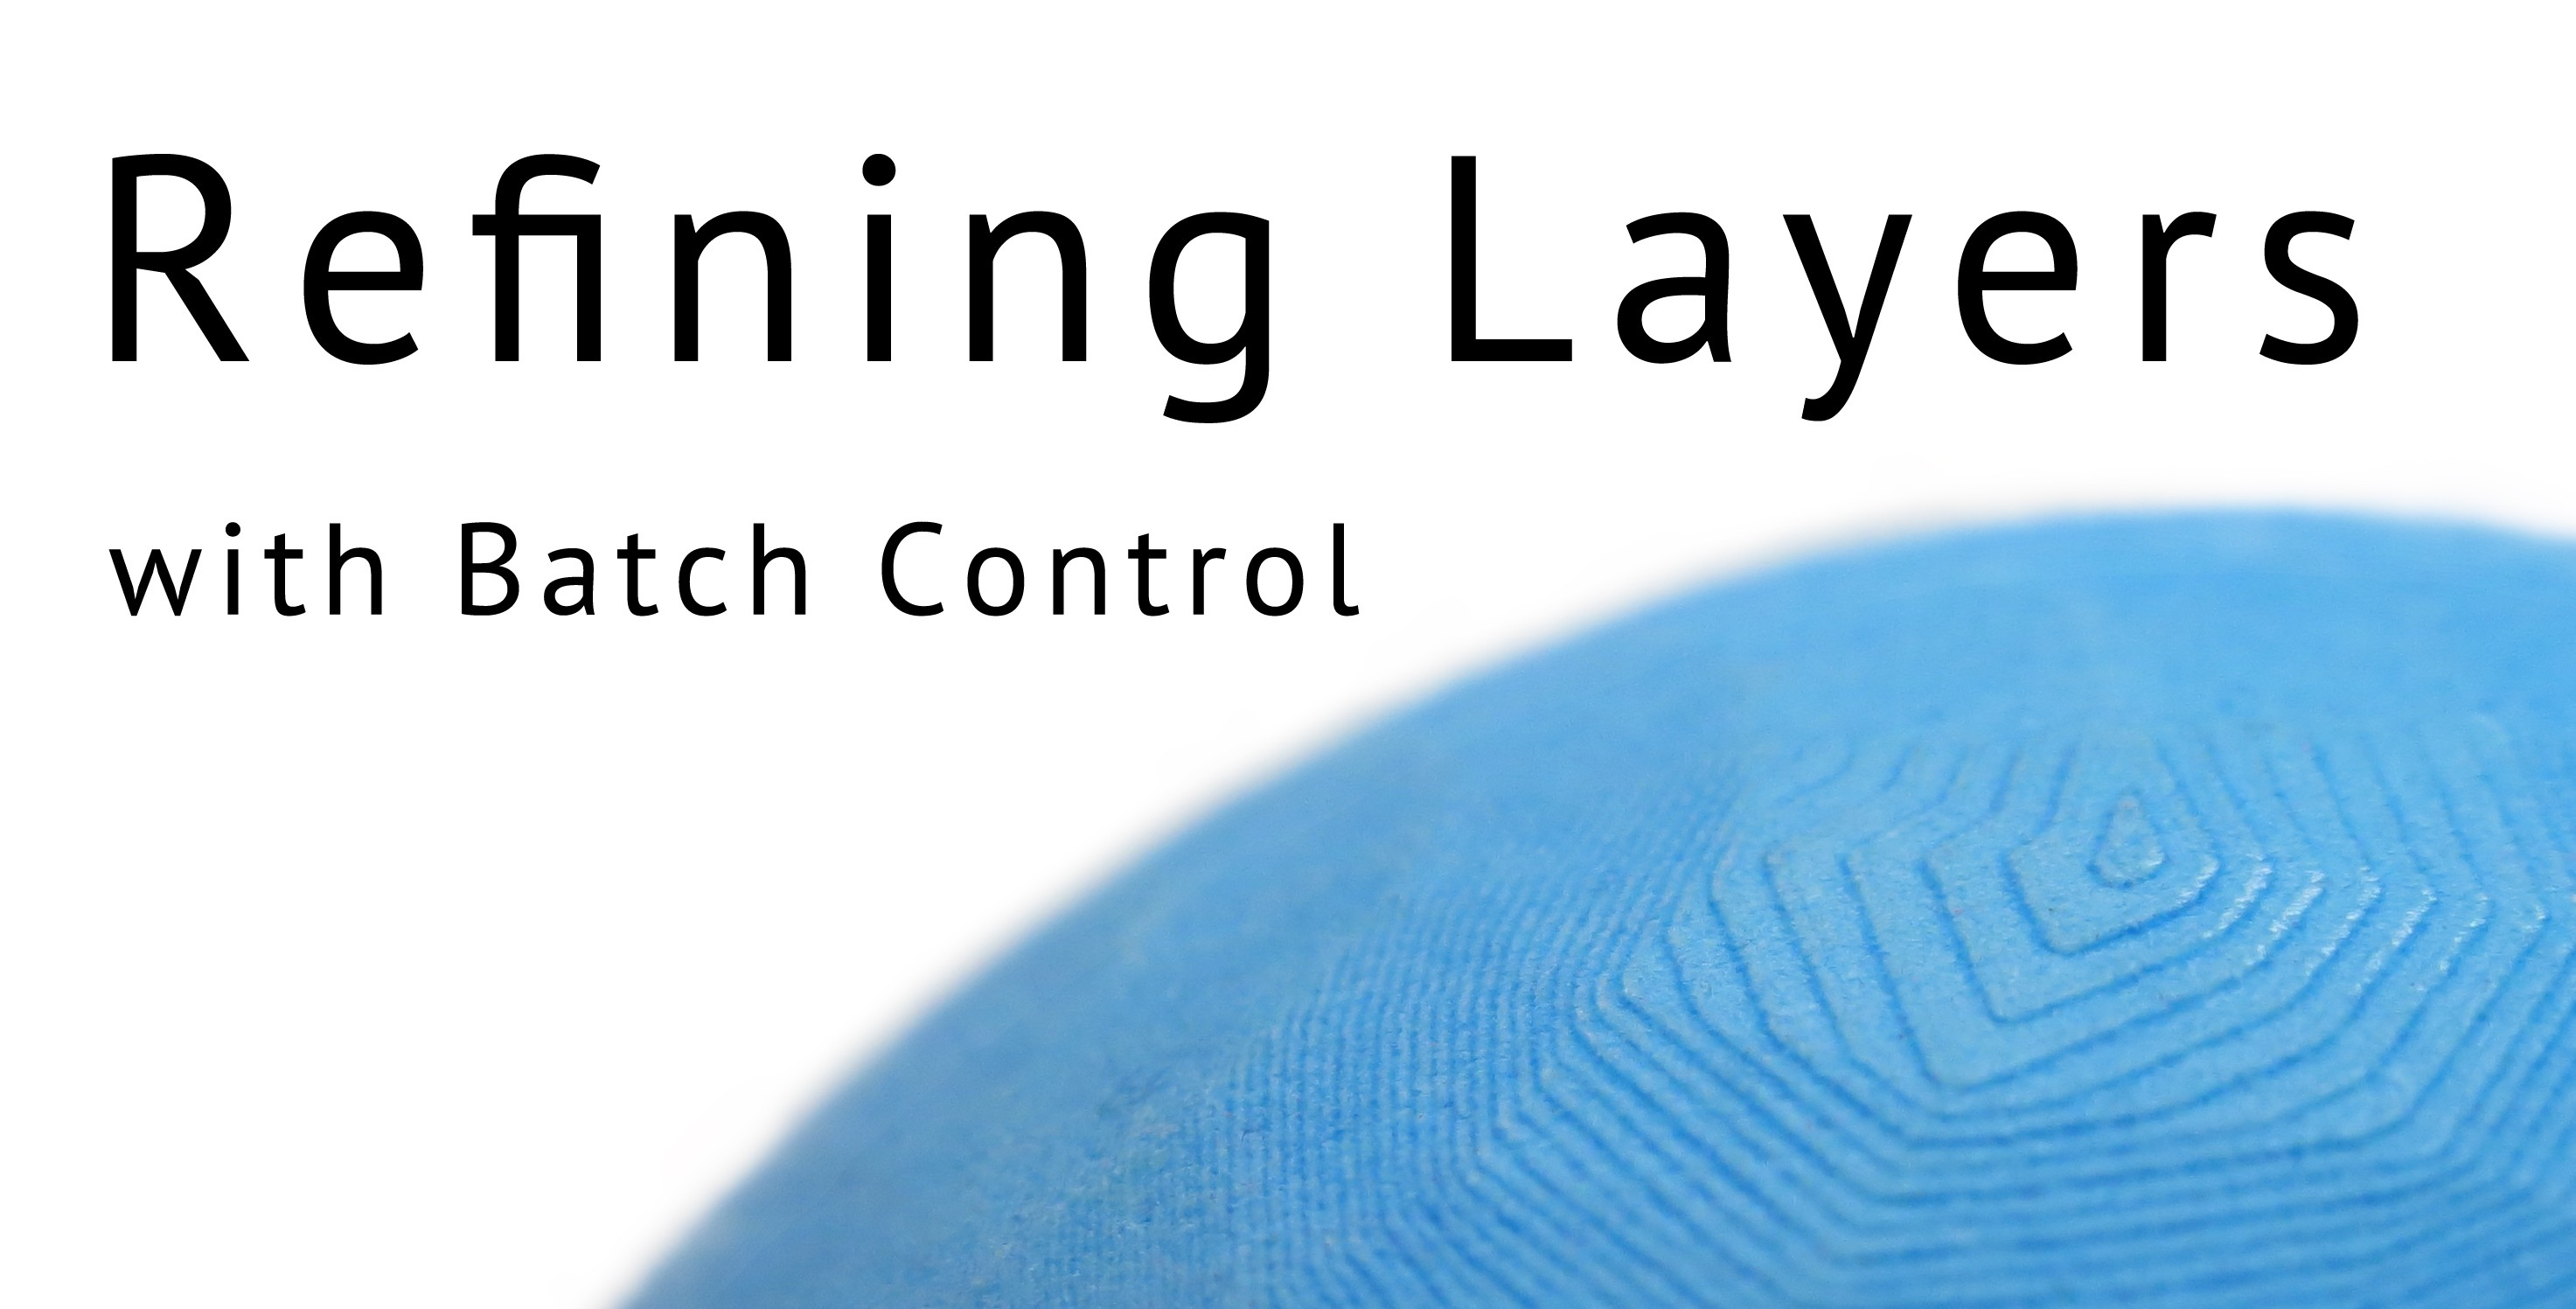 Refine layers using Batch Control